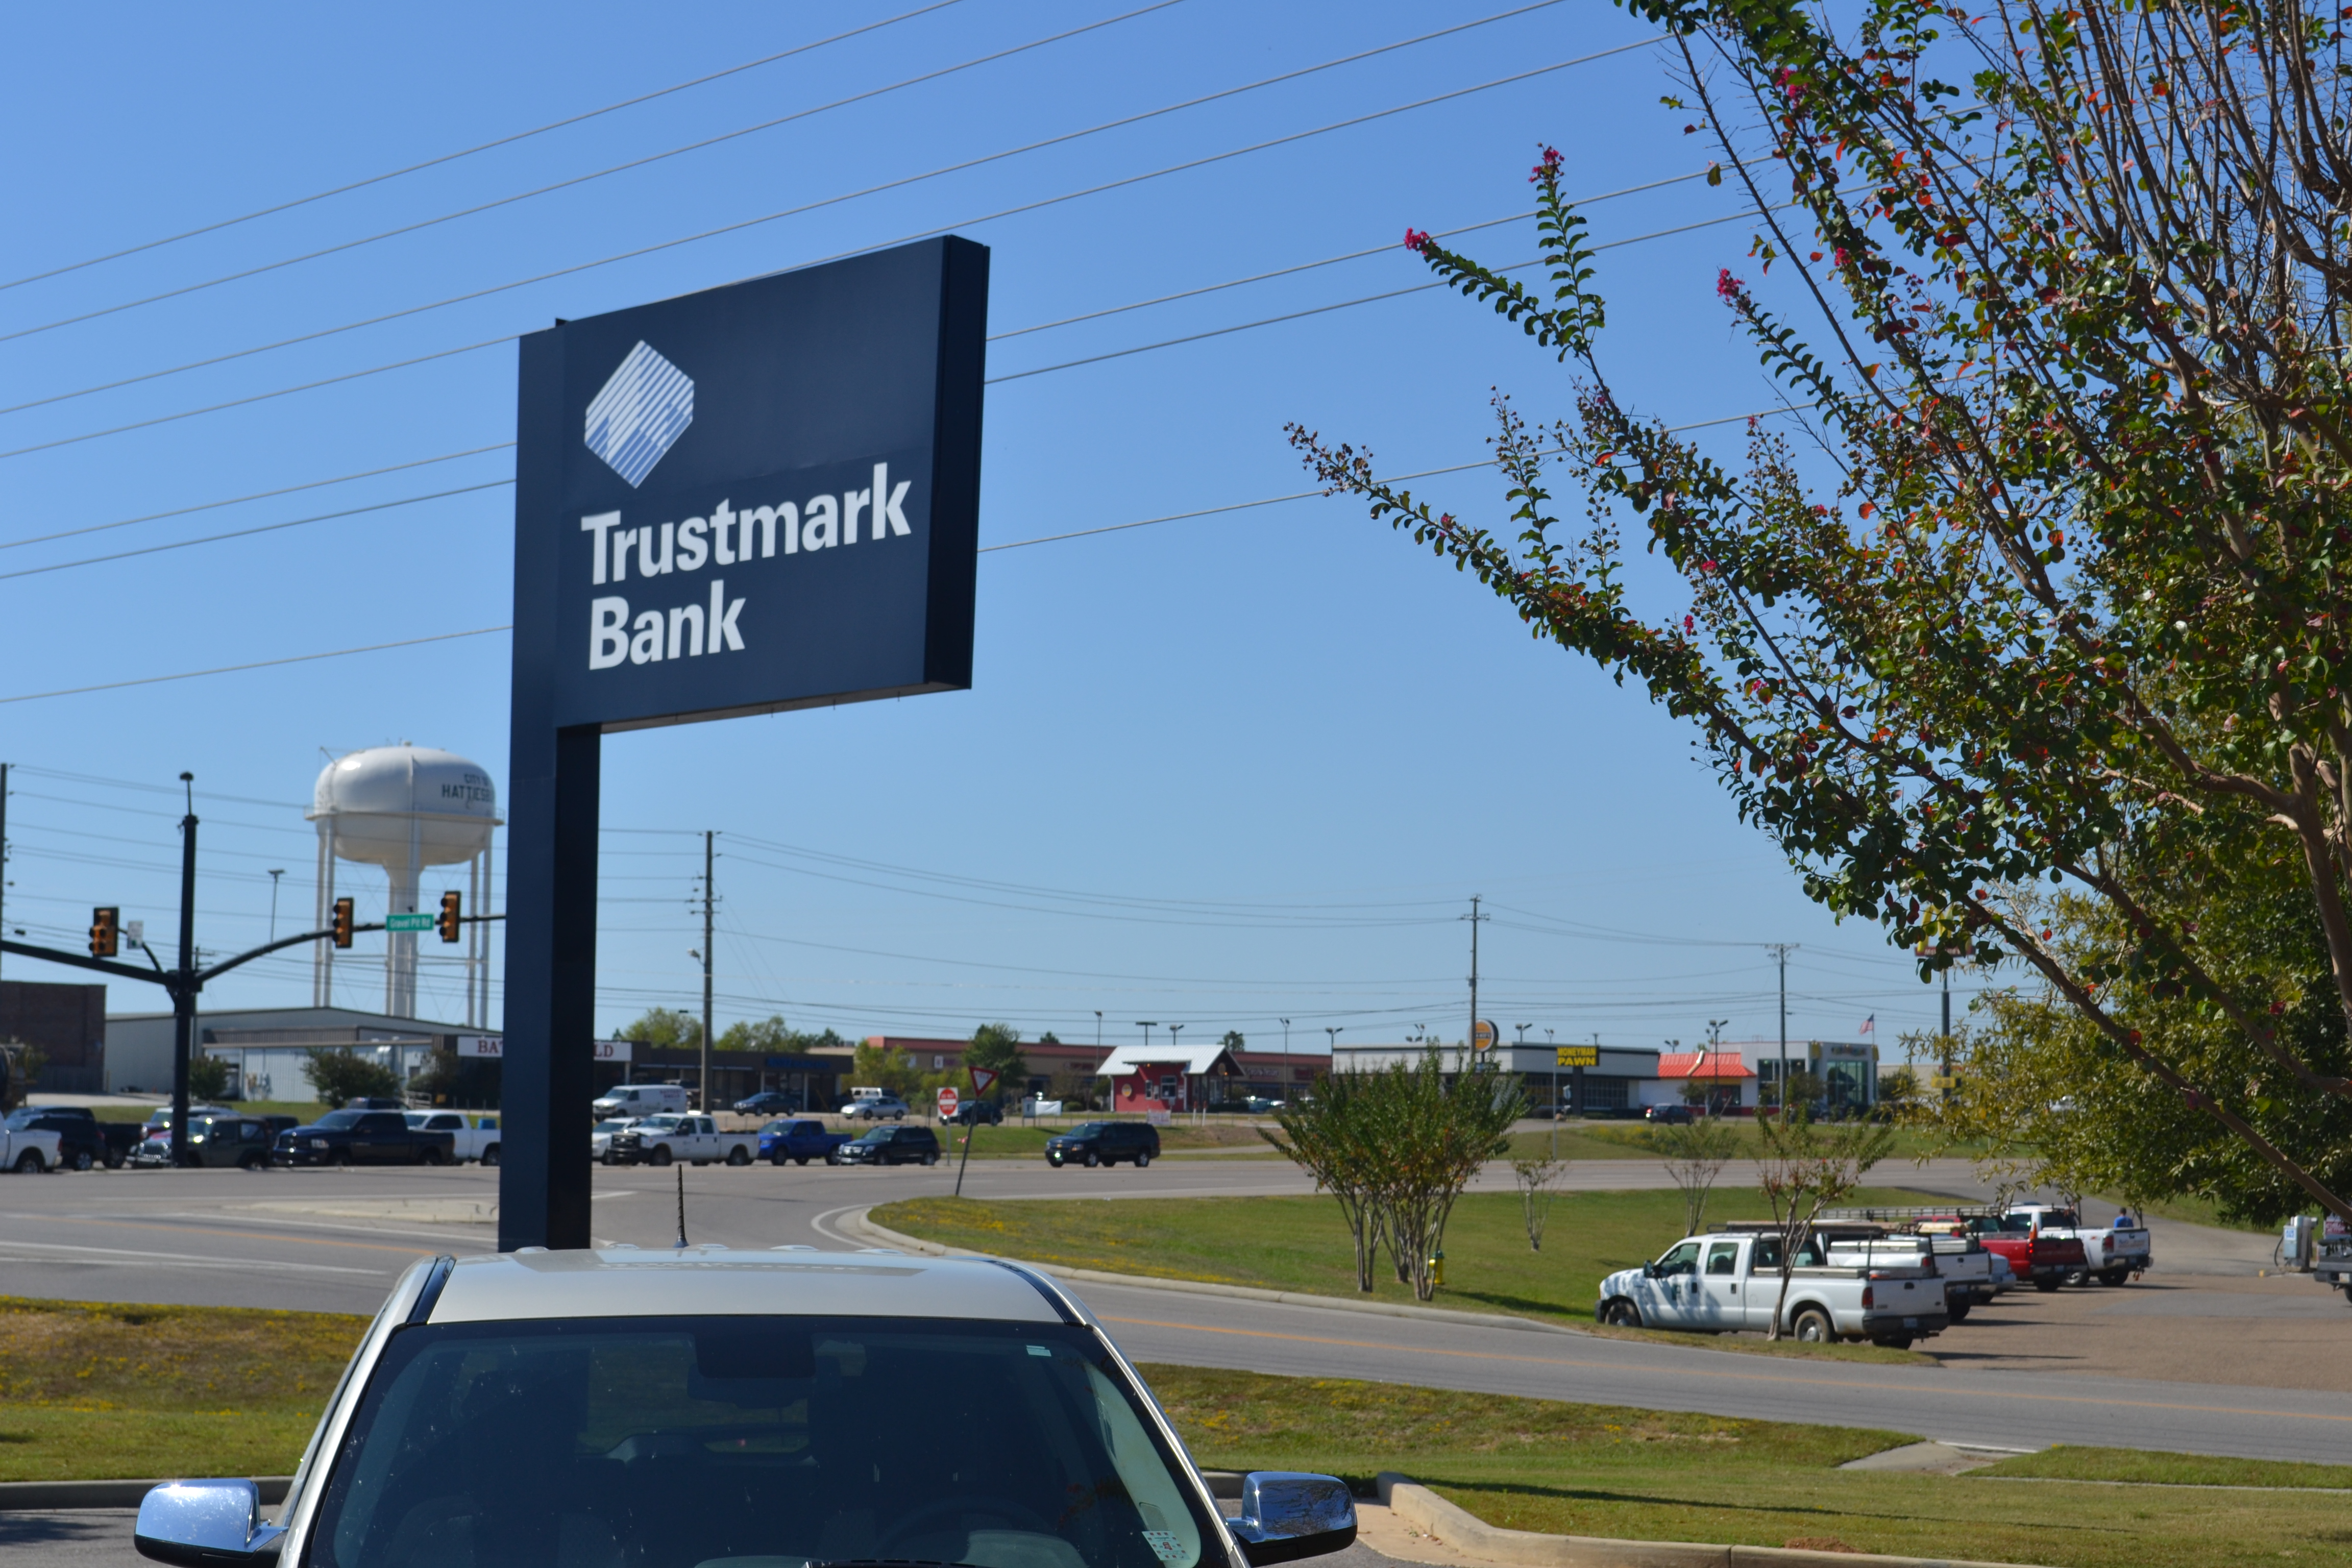 100159 - Trustmark Bank and ATM Location in Hattiesburg, MS